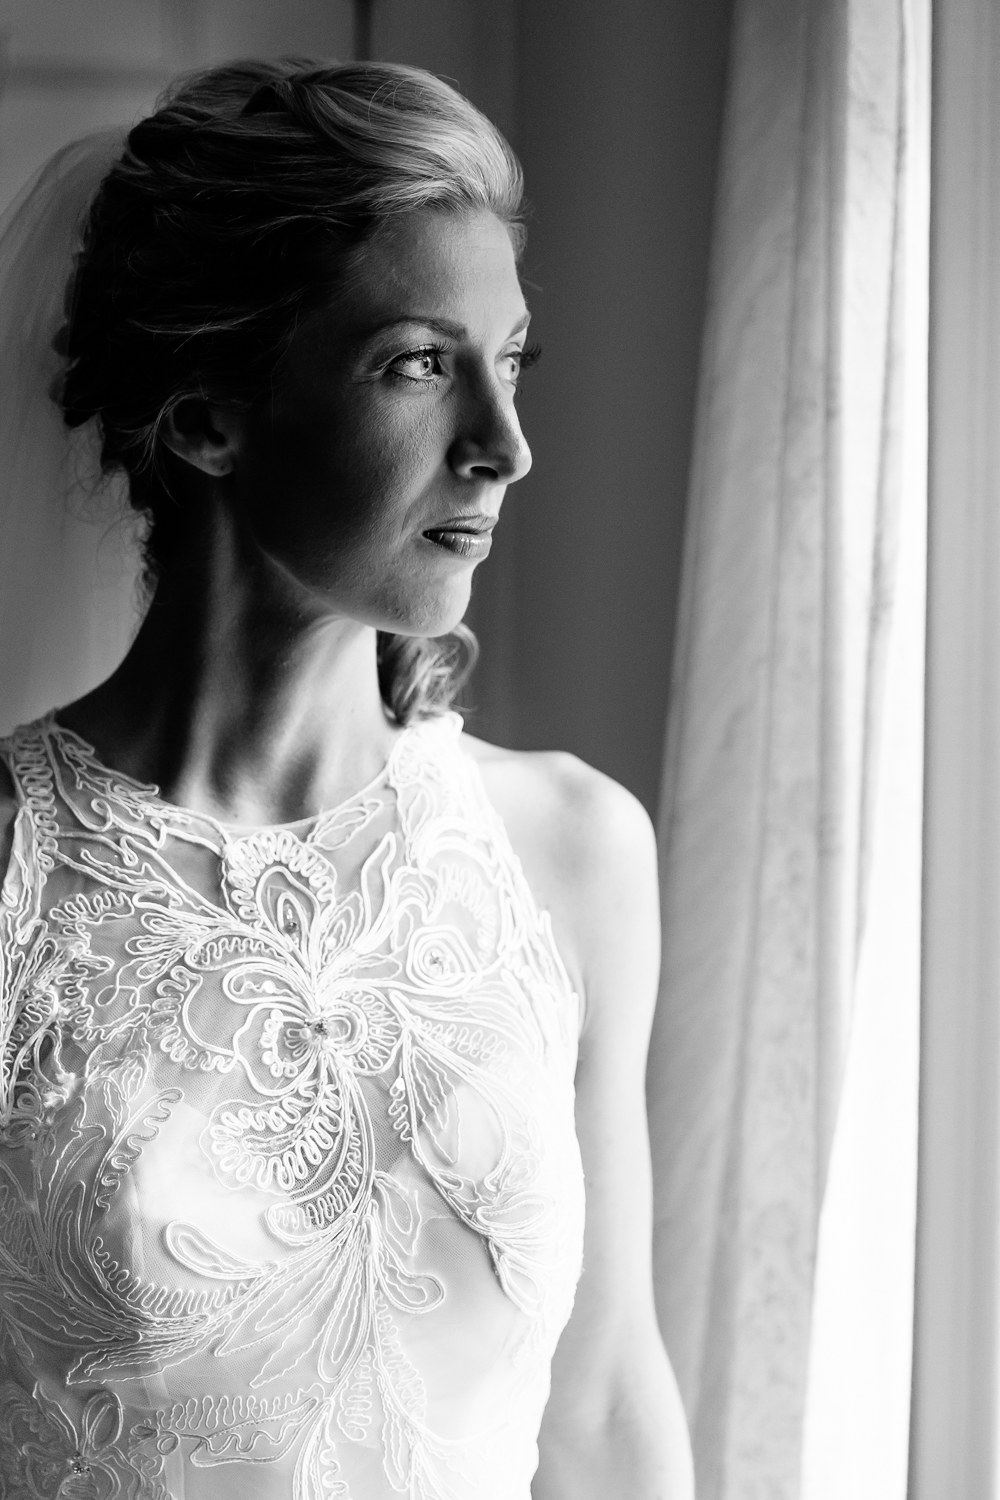 A bride looks out the window before her wedding.